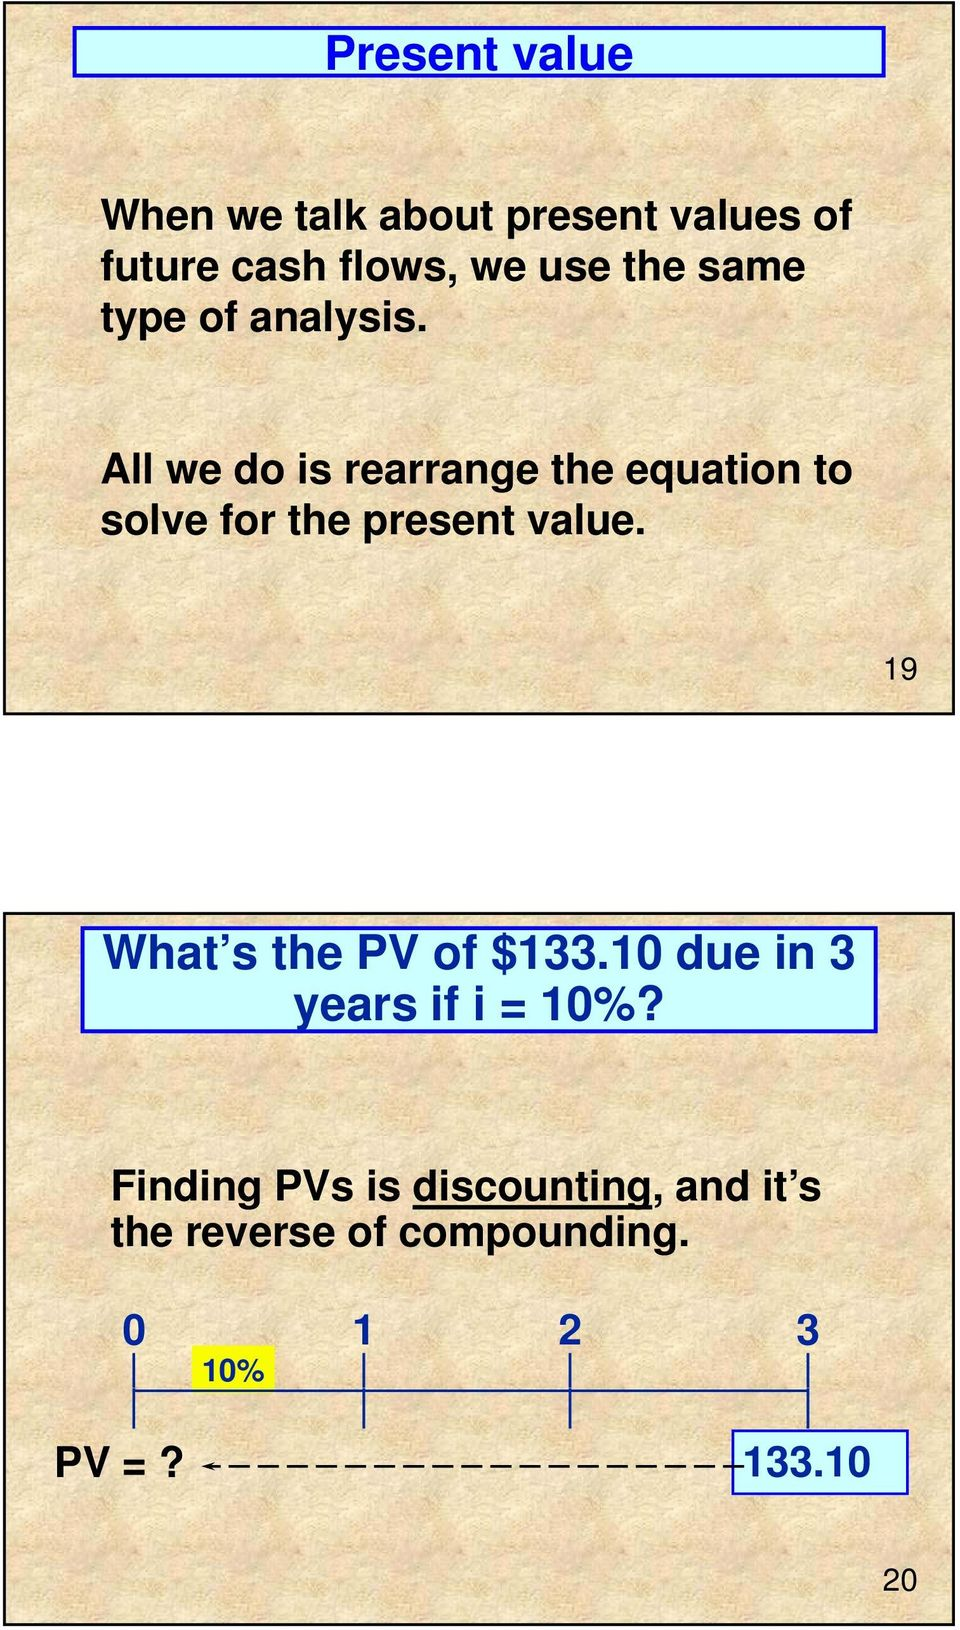 All we do is rearrange the equation to solve for the present value.